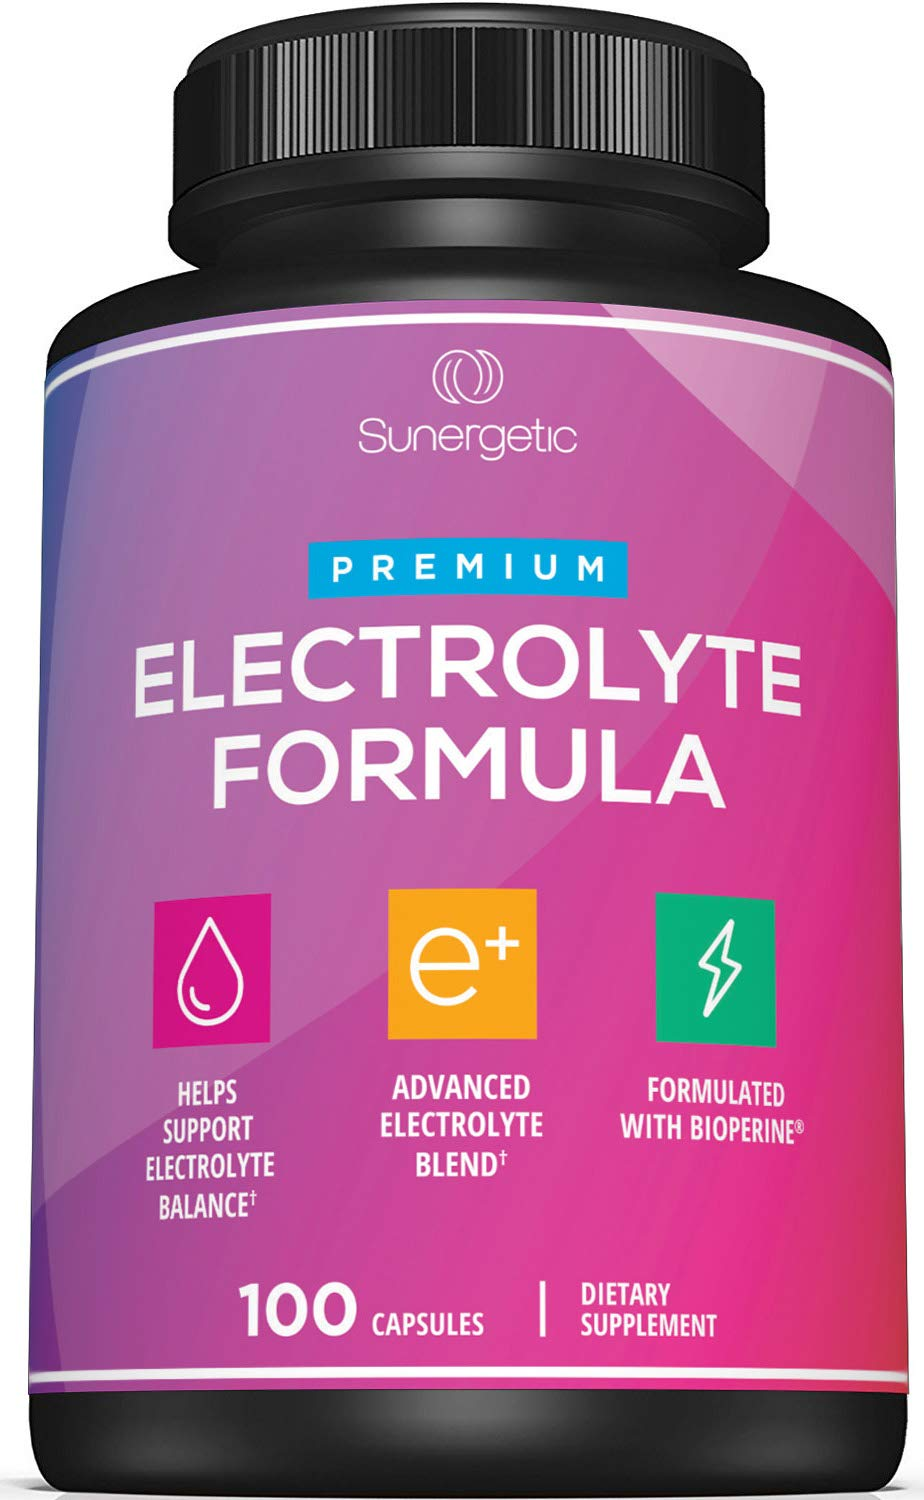 Premium Electrolyte Capsules - Support for Keto, Low Carb, Rehydration & Recovery - Electrolyte Replacement Capsules - Includes Electrolyte Salts, Magnesium, Sodium, Potassium - 100 Capsules by Sunergetic